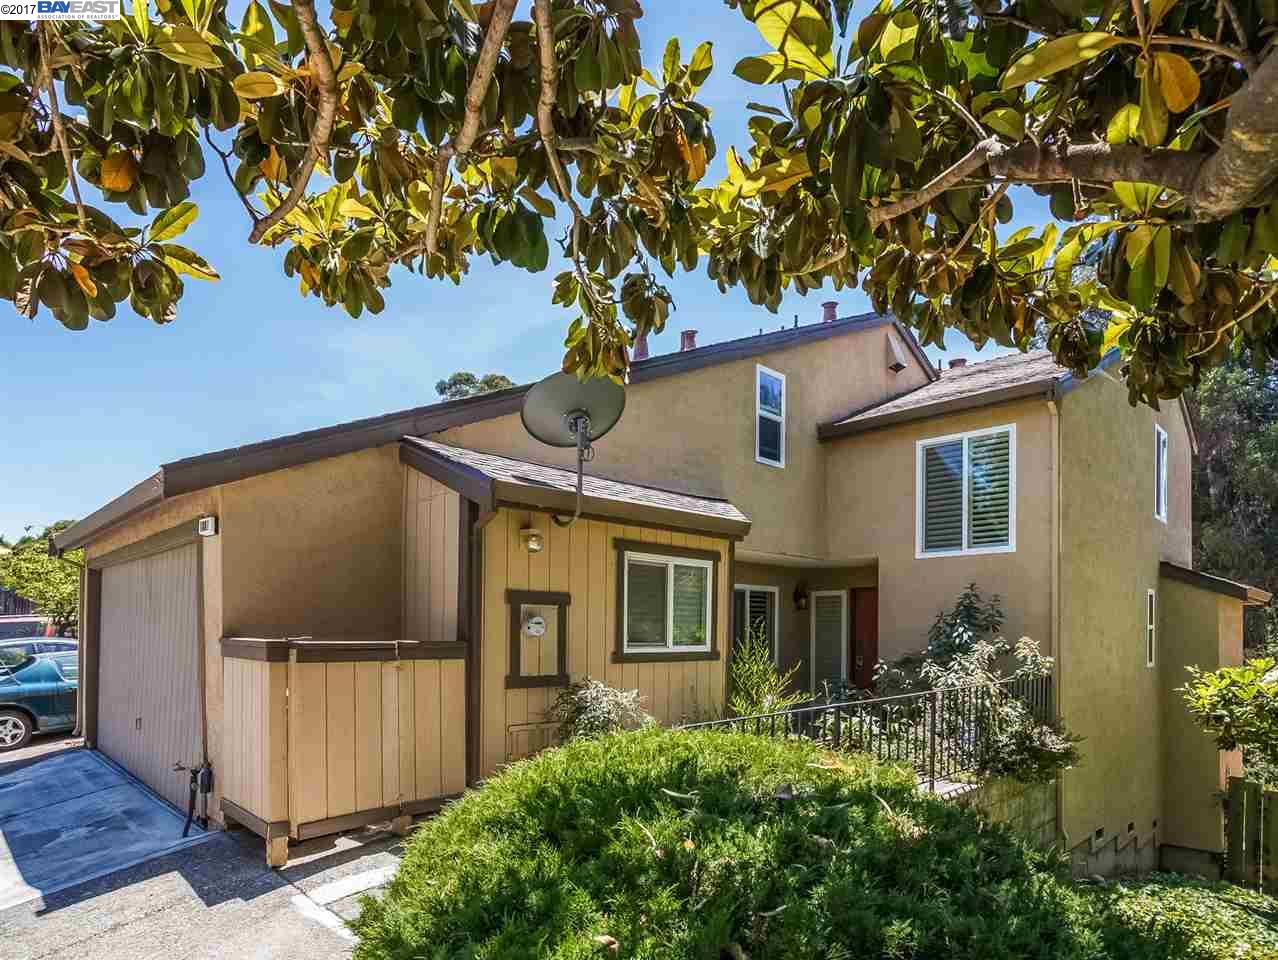 Additional photo for property listing at 1881 Chantilly Lane  Hayward, カリフォルニア 94541 アメリカ合衆国